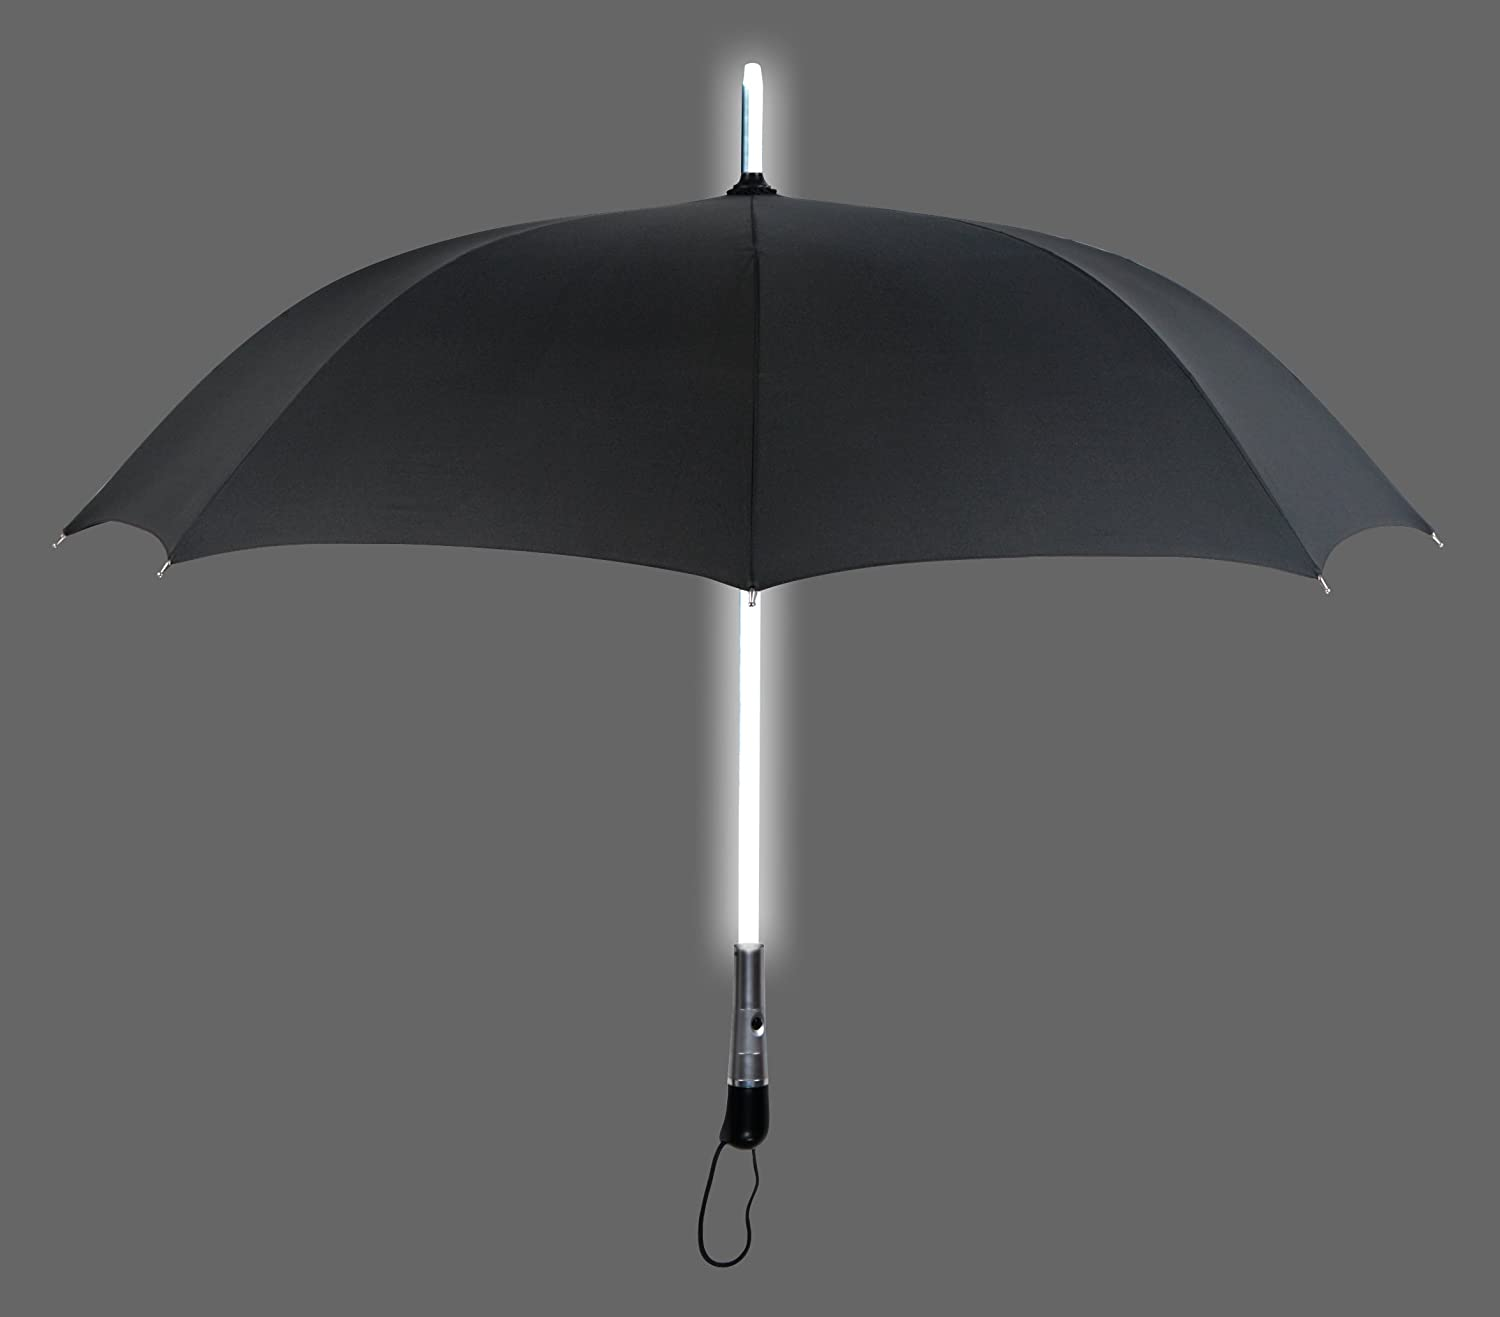 LED Lighted Up Shaft 3 Light Modes Windproof Umbrella